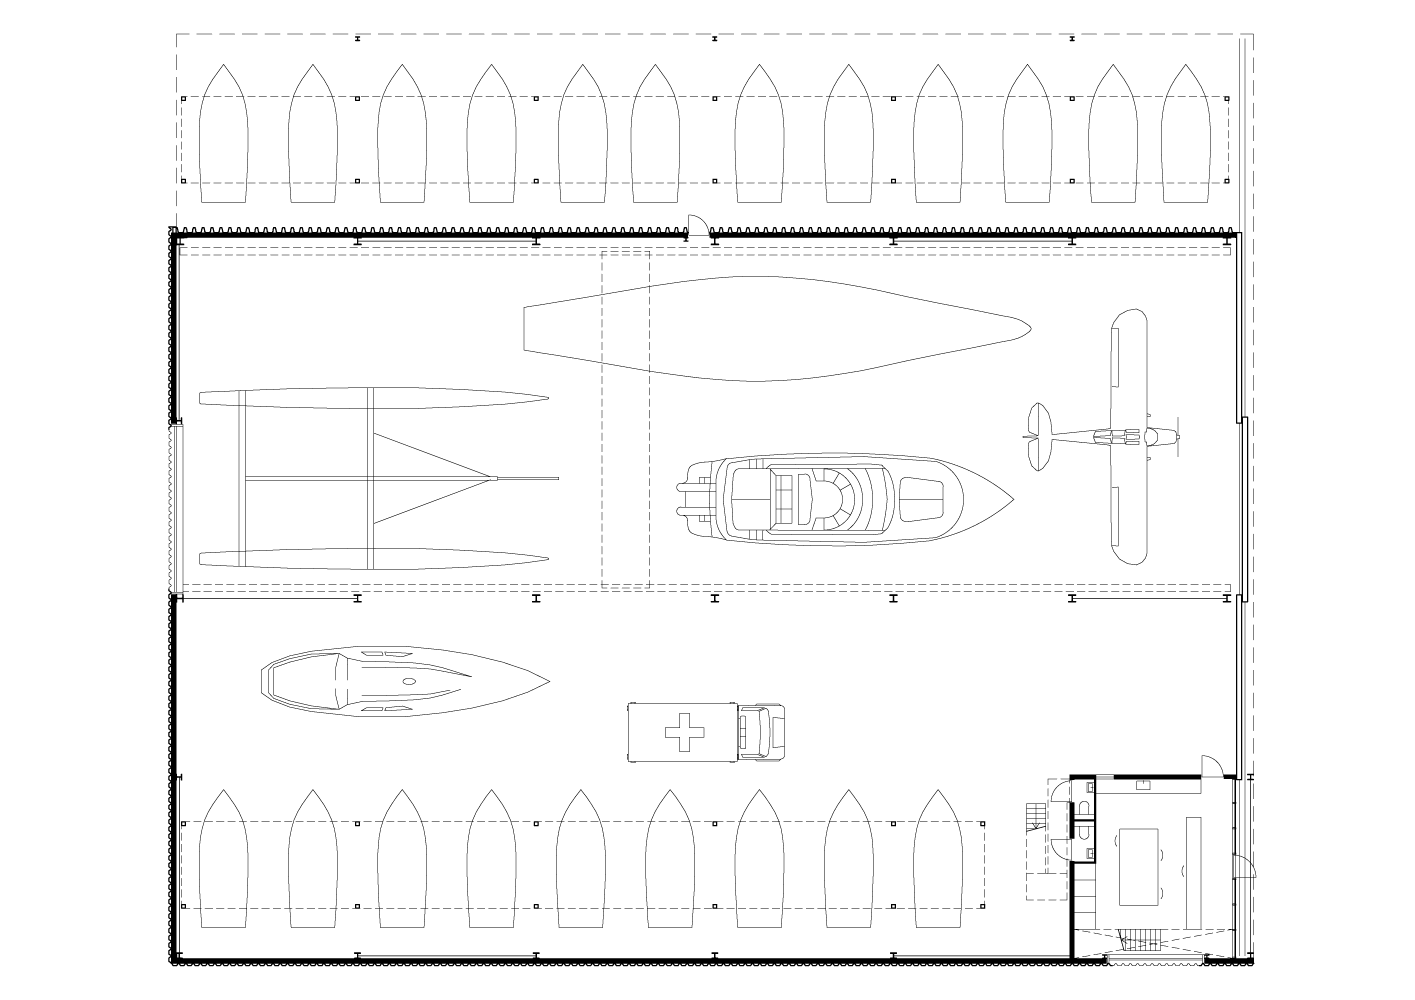 plan drawing of Boat Hangar project by BETA office for architecture and the city